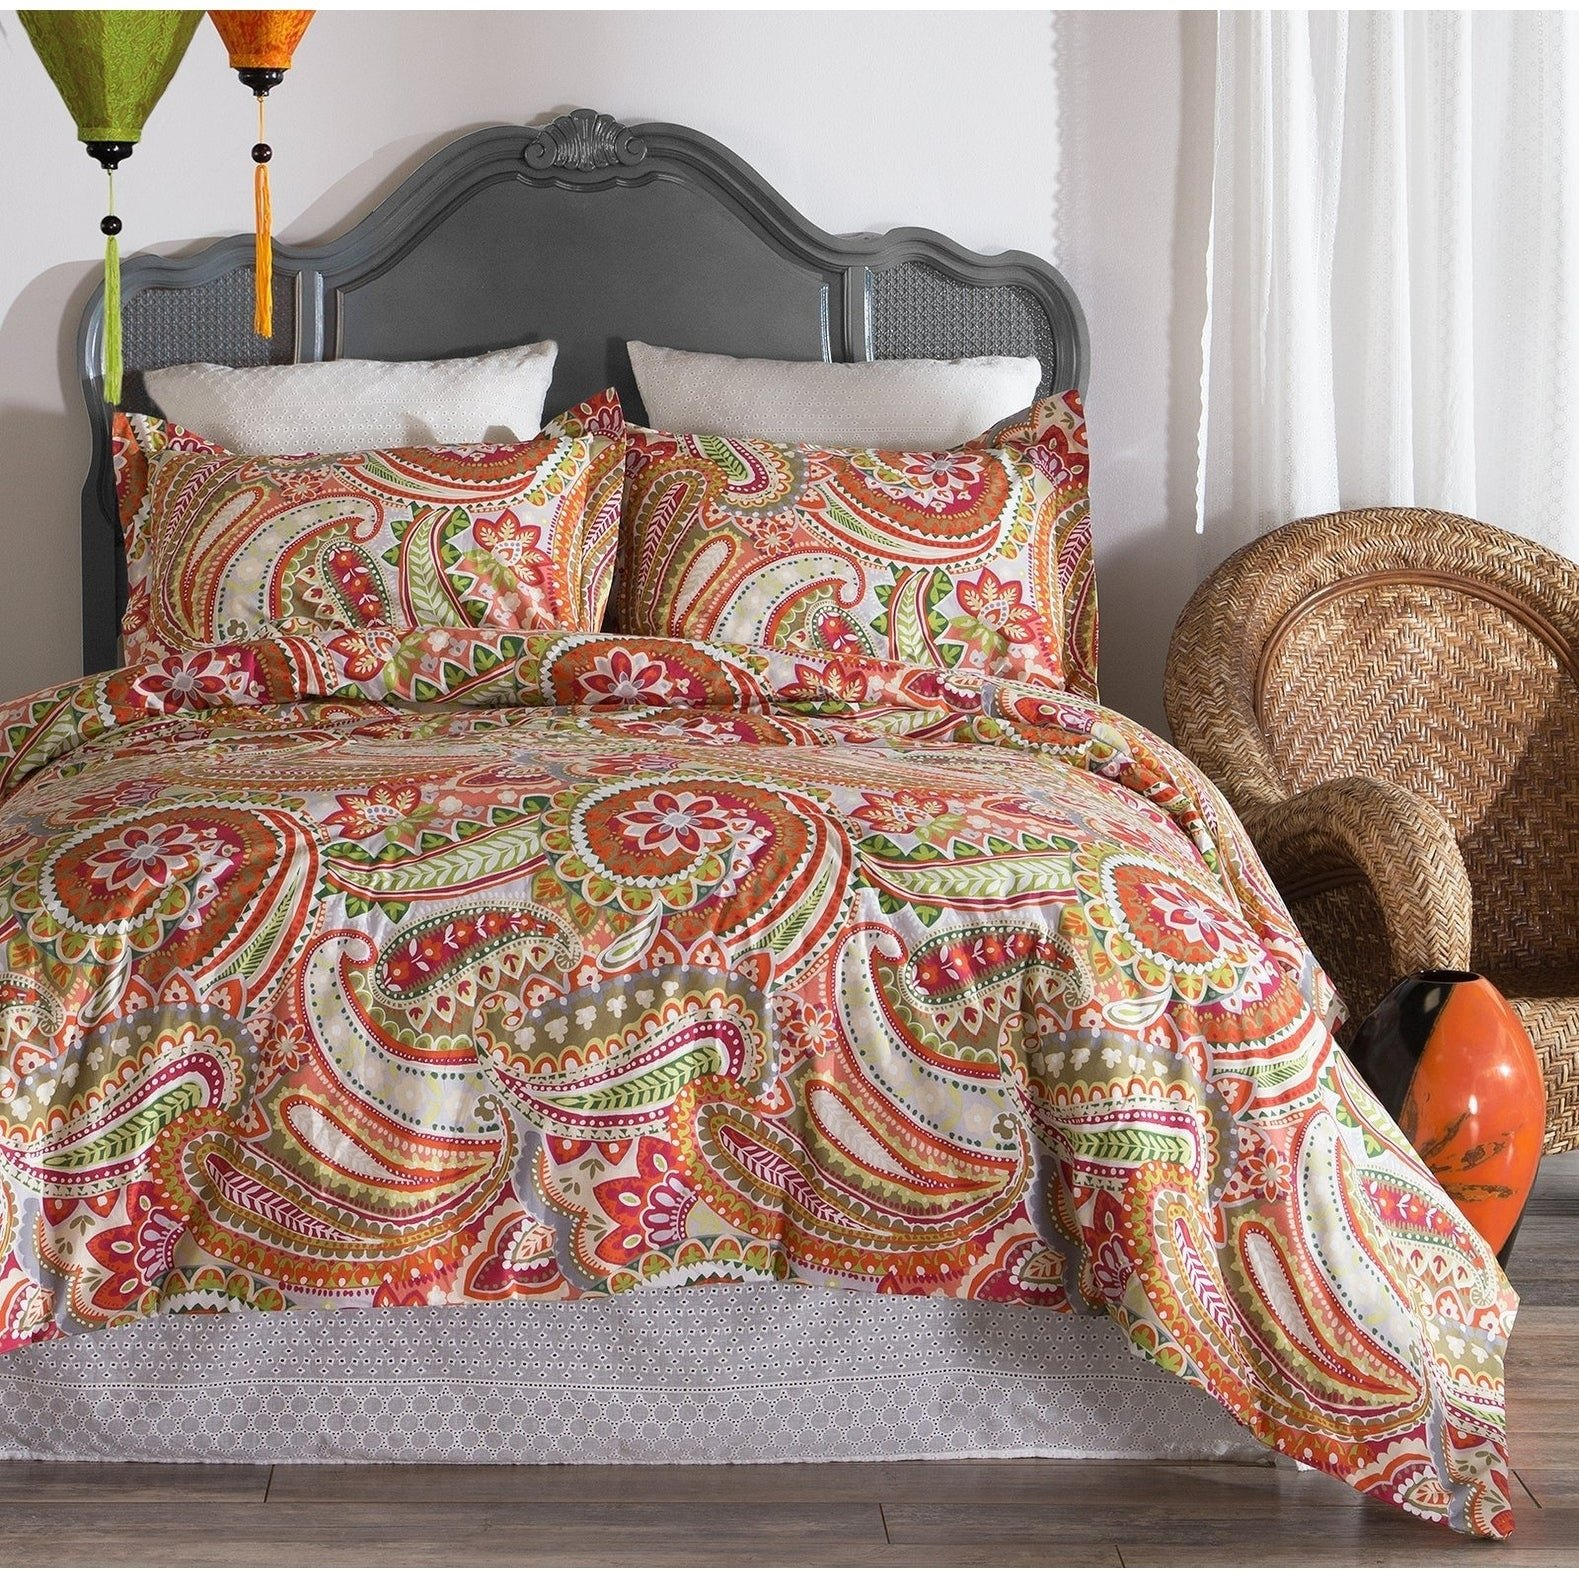 King Size Bedroom Comforter Set New Porch & Den Flora King Size Paisley Printed Cotton forter Set